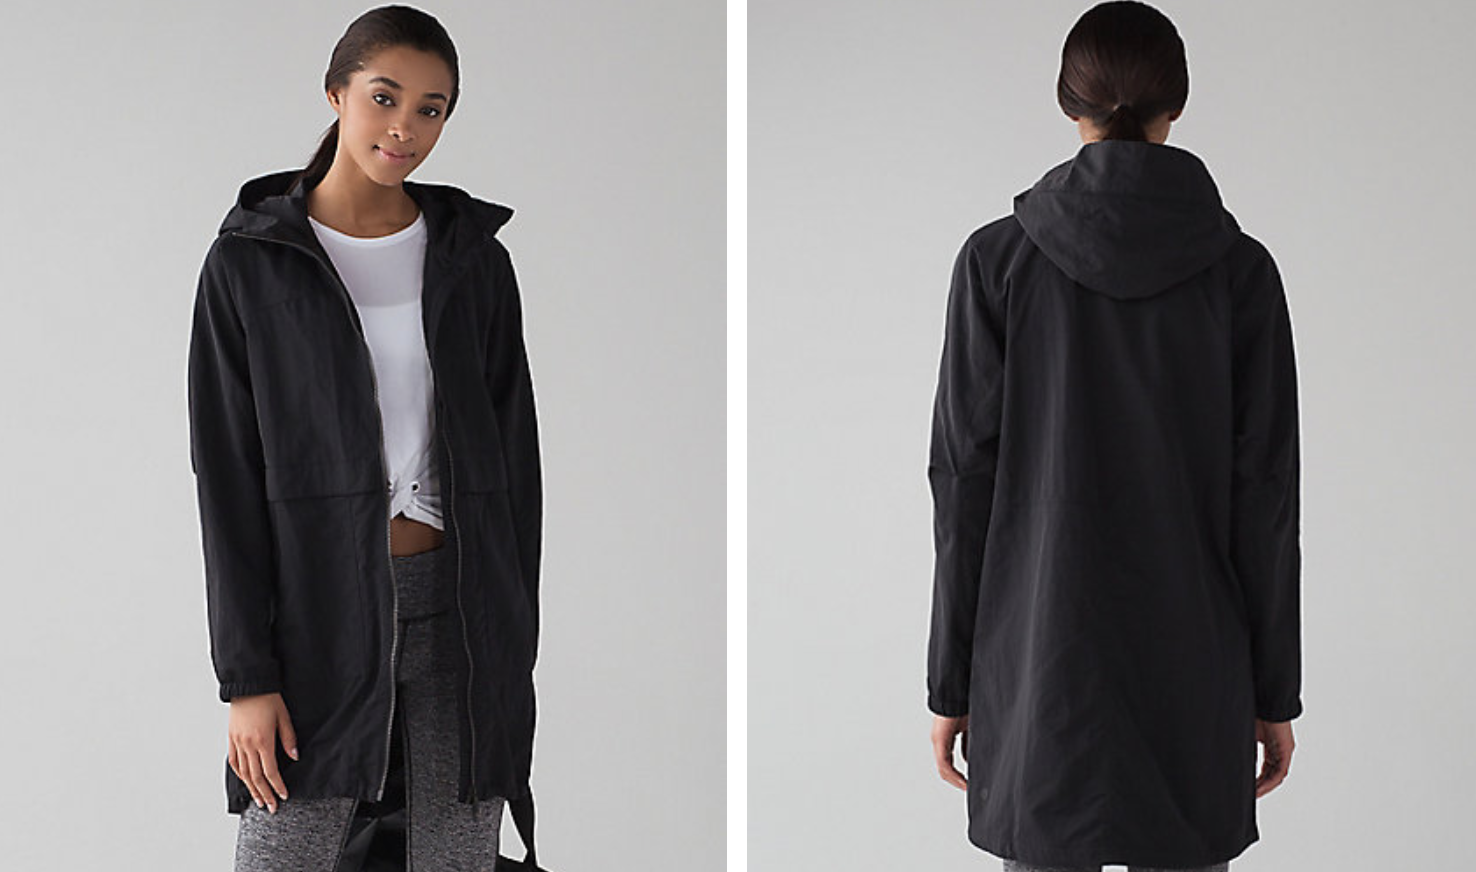 https://api.shopstyle.com/action/apiVisitRetailer?url=https%3A%2F%2Fshop.lululemon.com%2Fp%2Fwomens-outerwear%2FEasy-As-Jacket%2F_%2Fprod8431356%3Frcnt%3D40%26N%3D1z13ziiZ7z5%26cnt%3D65%26color%3DLW4AEXS_026083&site=www.shopstyle.ca&pid=uid6784-25288972-7